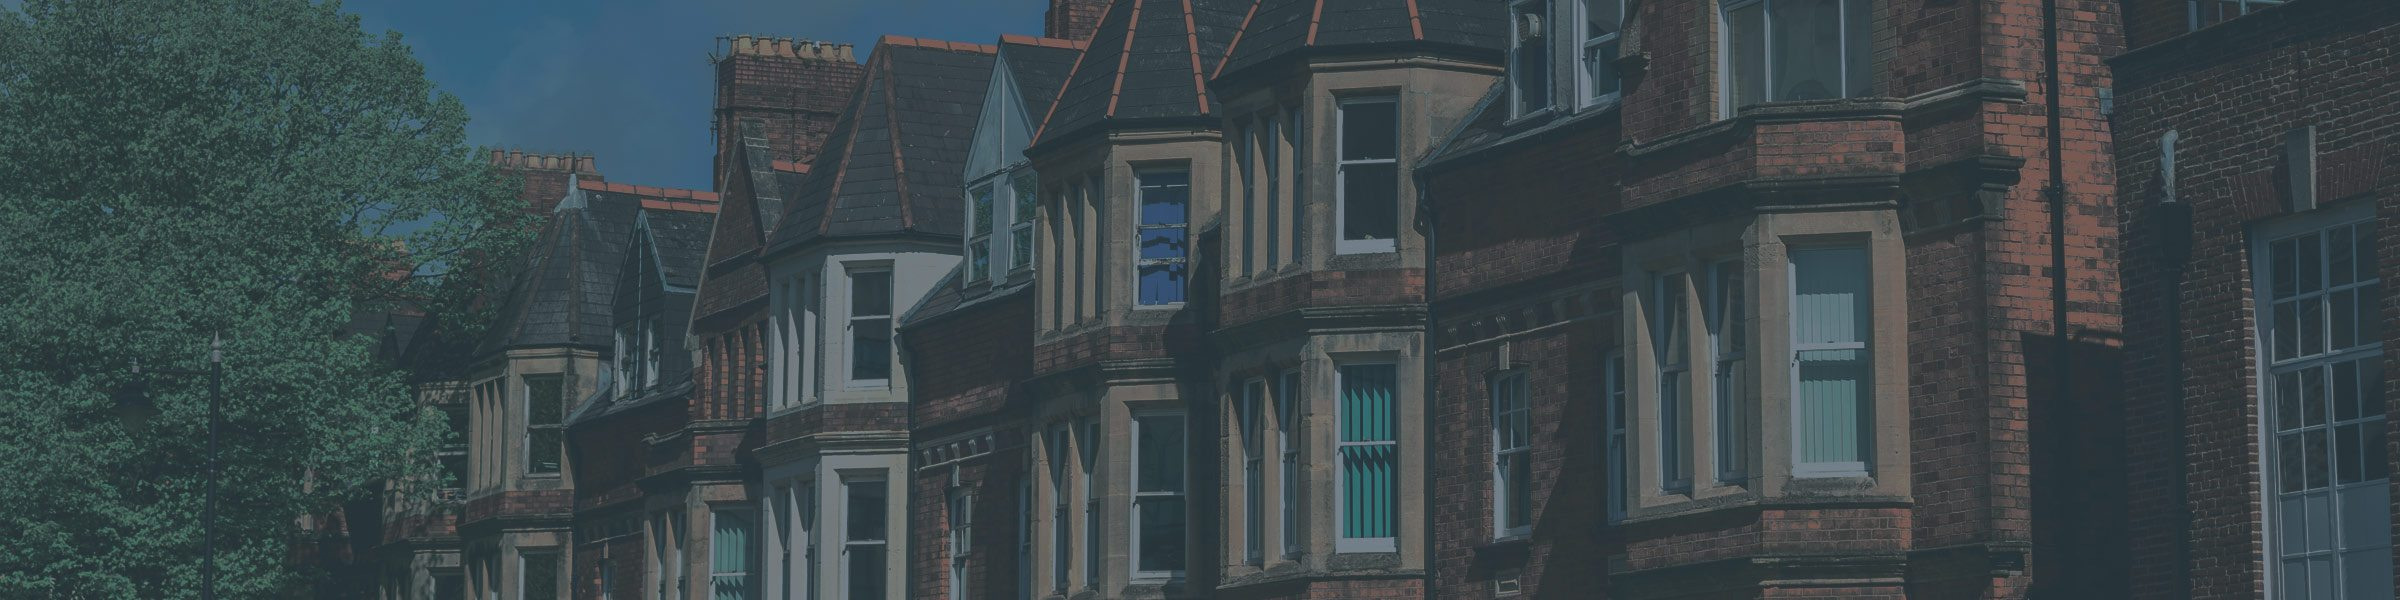 Property to Rent in Cardiff